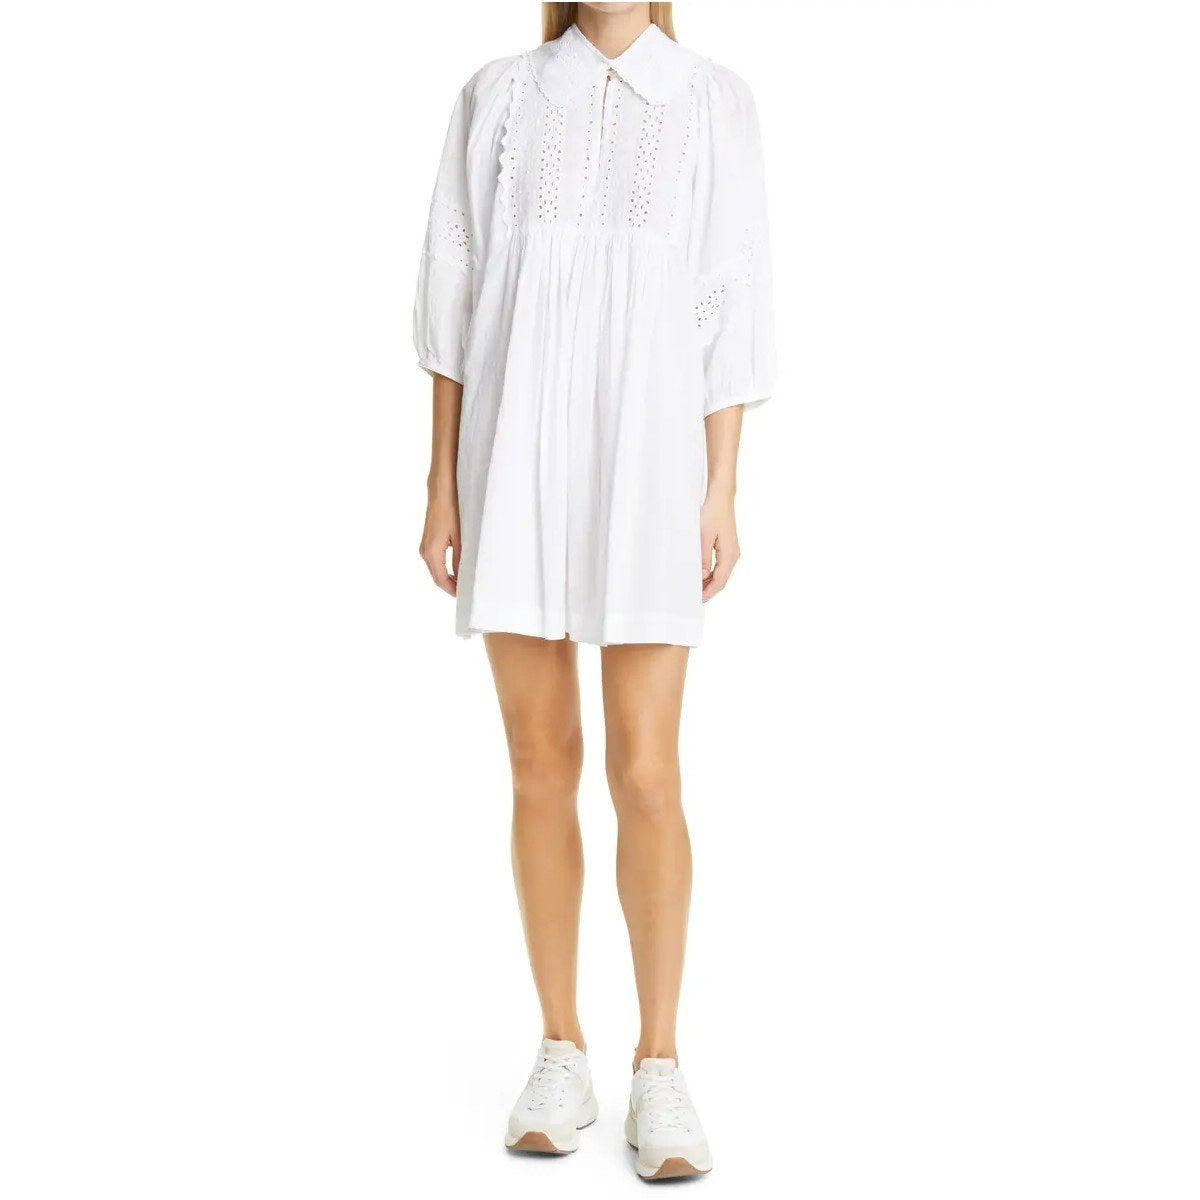 Broderie Anglaise Minidress with Removable Collar